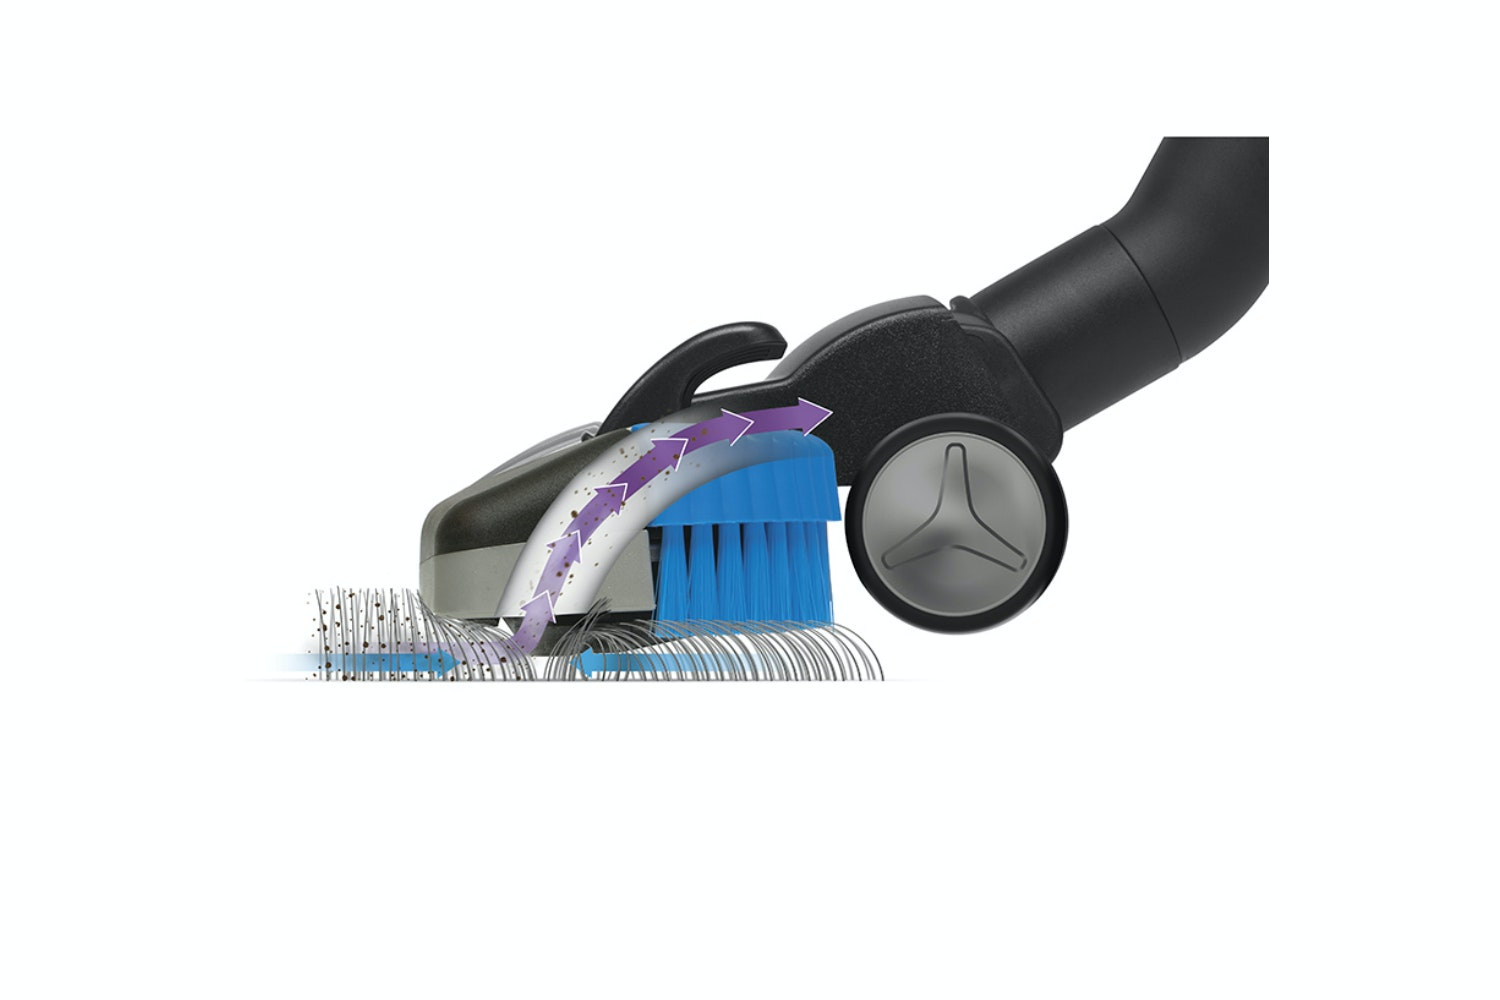 Philips PowerLife Vacuum cleaner 3-in-1 TriActive nozzle